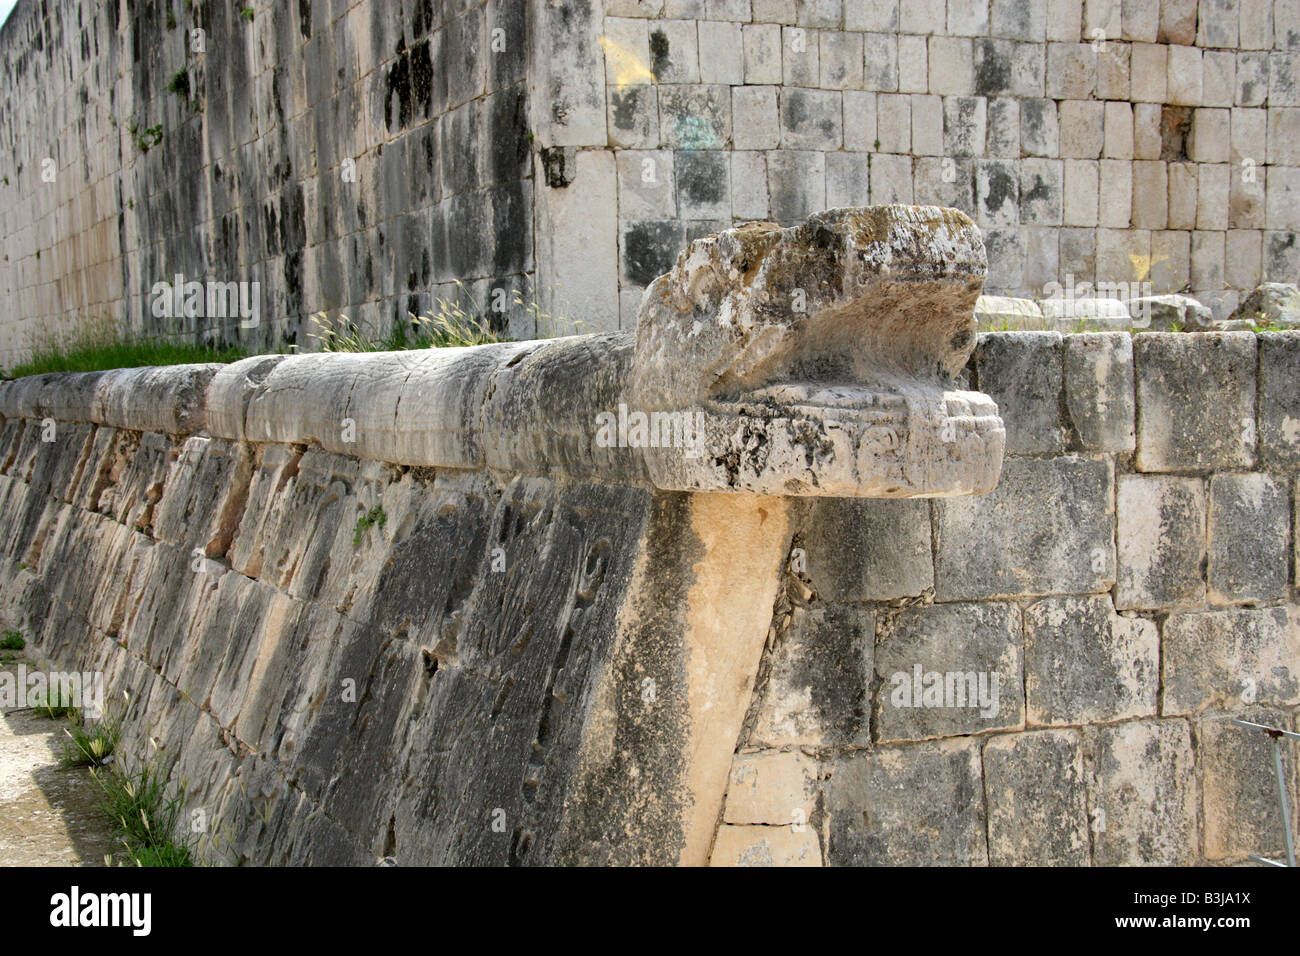 Serpent's Head at the Great Ballcourt, Juego Pelota, Chichen Itza, Yucatan Peninsular, Mexico - Stock Image